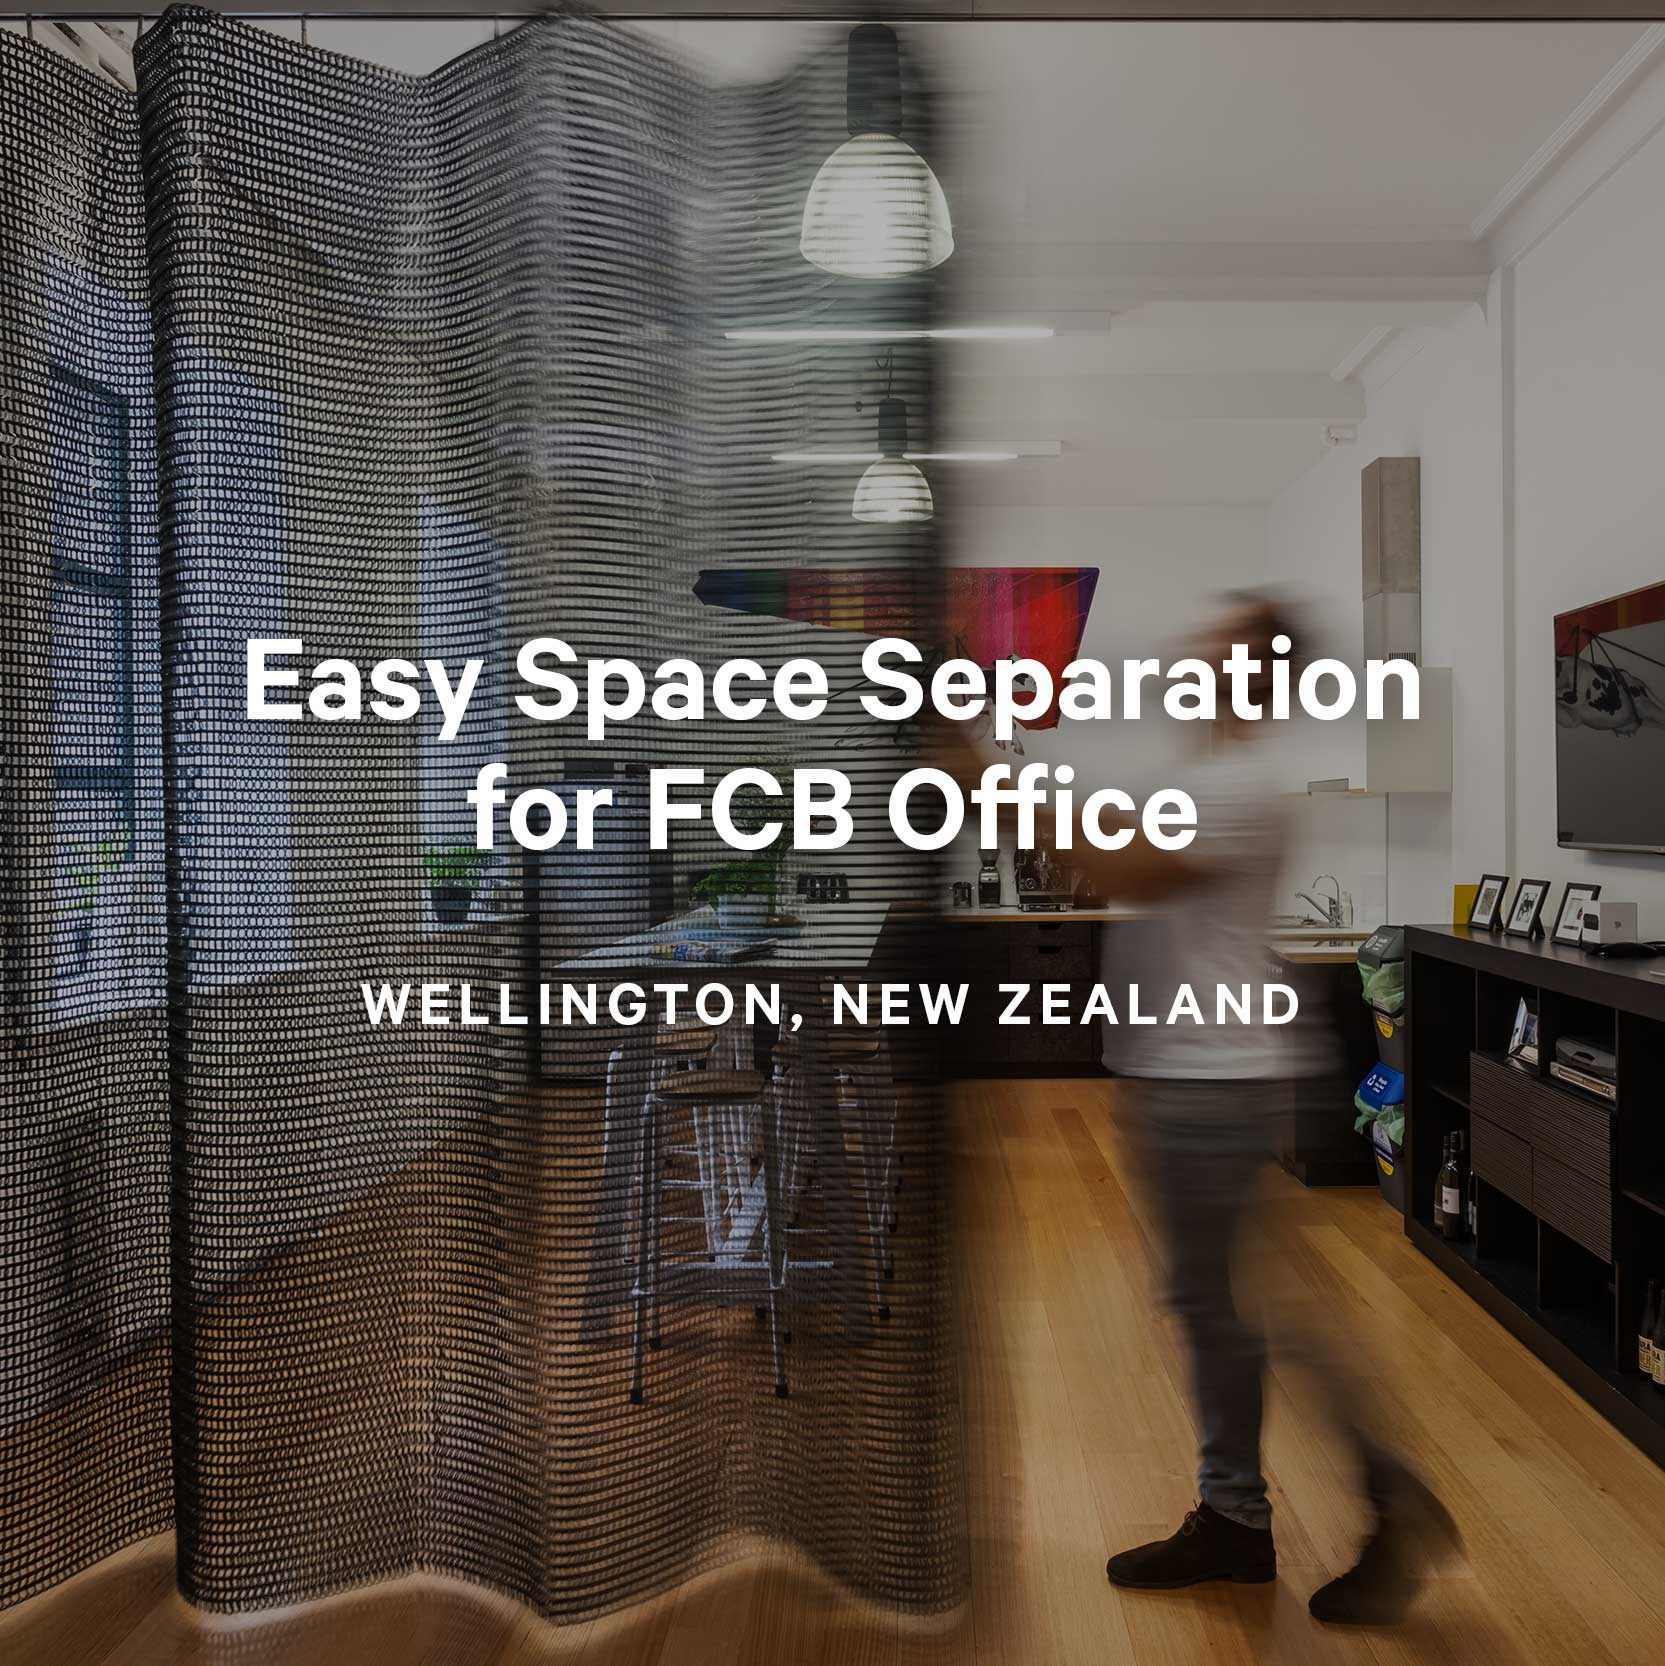 Easy Space Separation for FCB Office